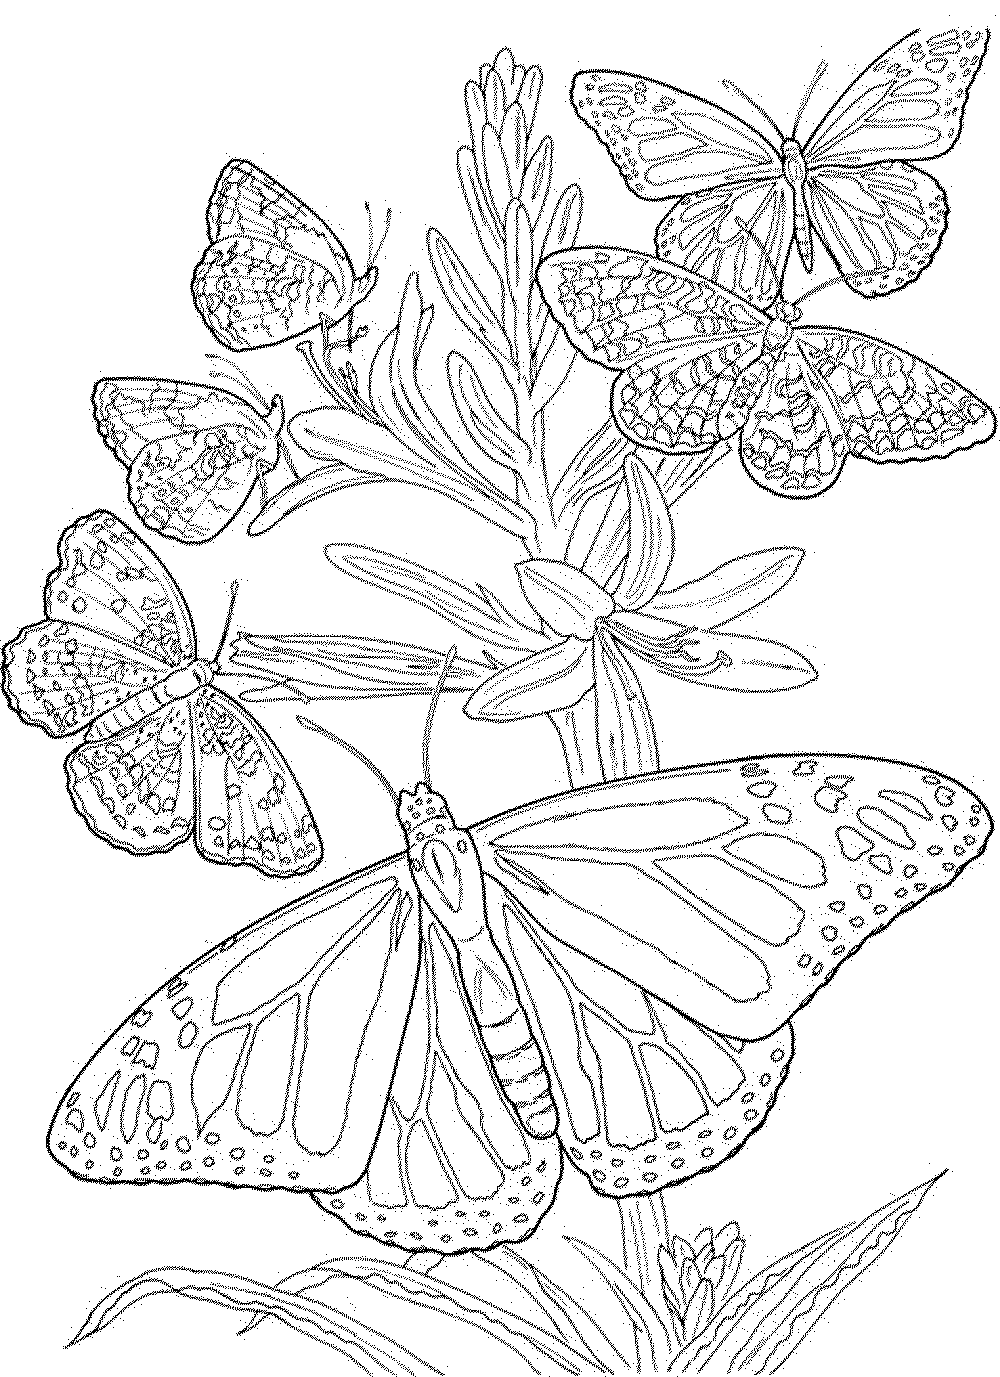 coloring book for adults online nymph printable adult coloring page from favoreads coloring adults online for book